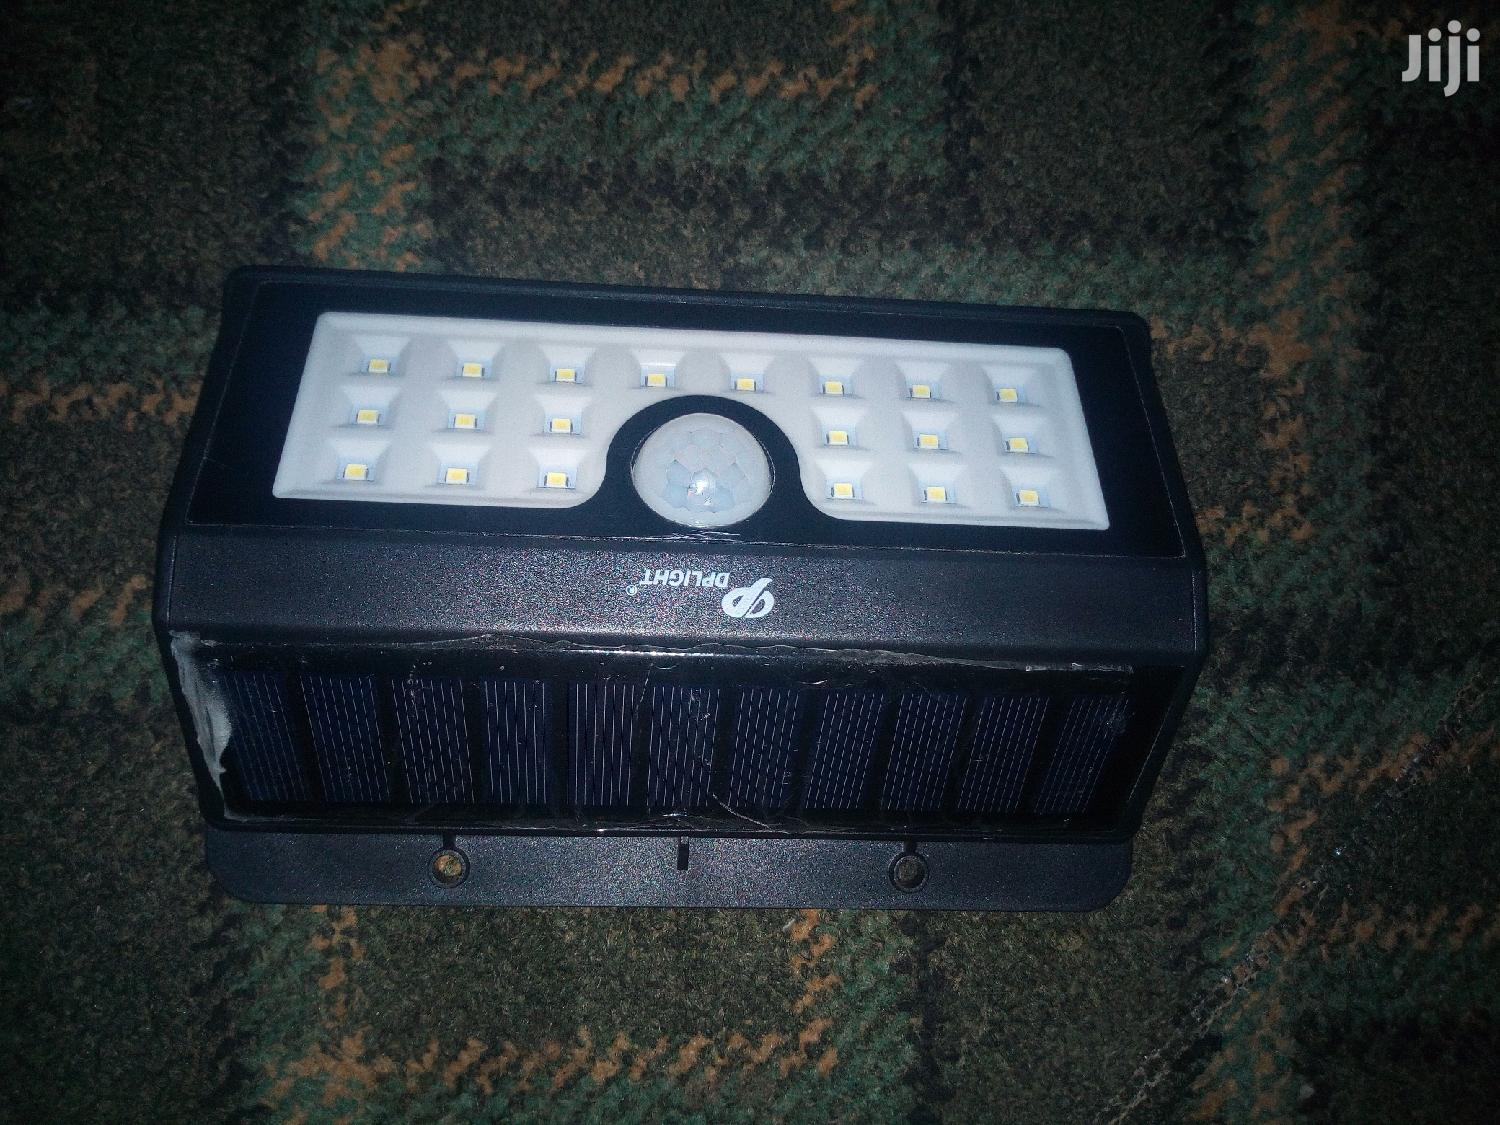 Solar Motion Sensor Security Light With Auto on and Off Func